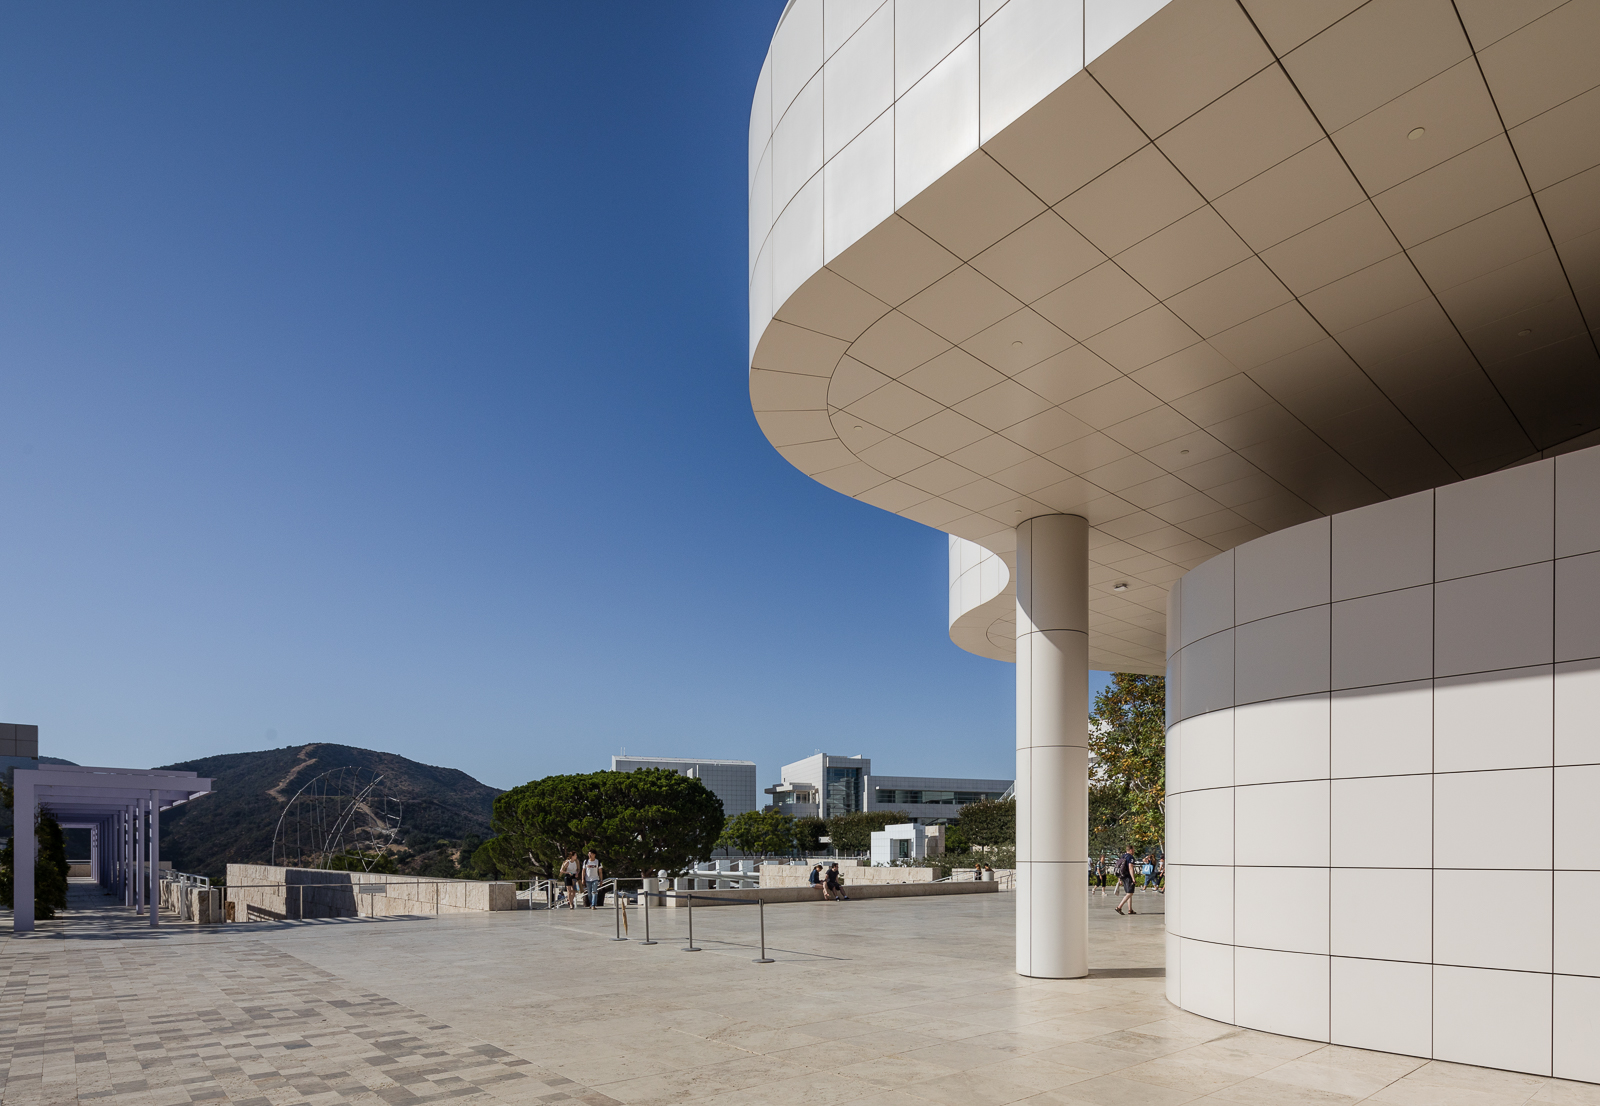 Architectural detail of the Getty Center